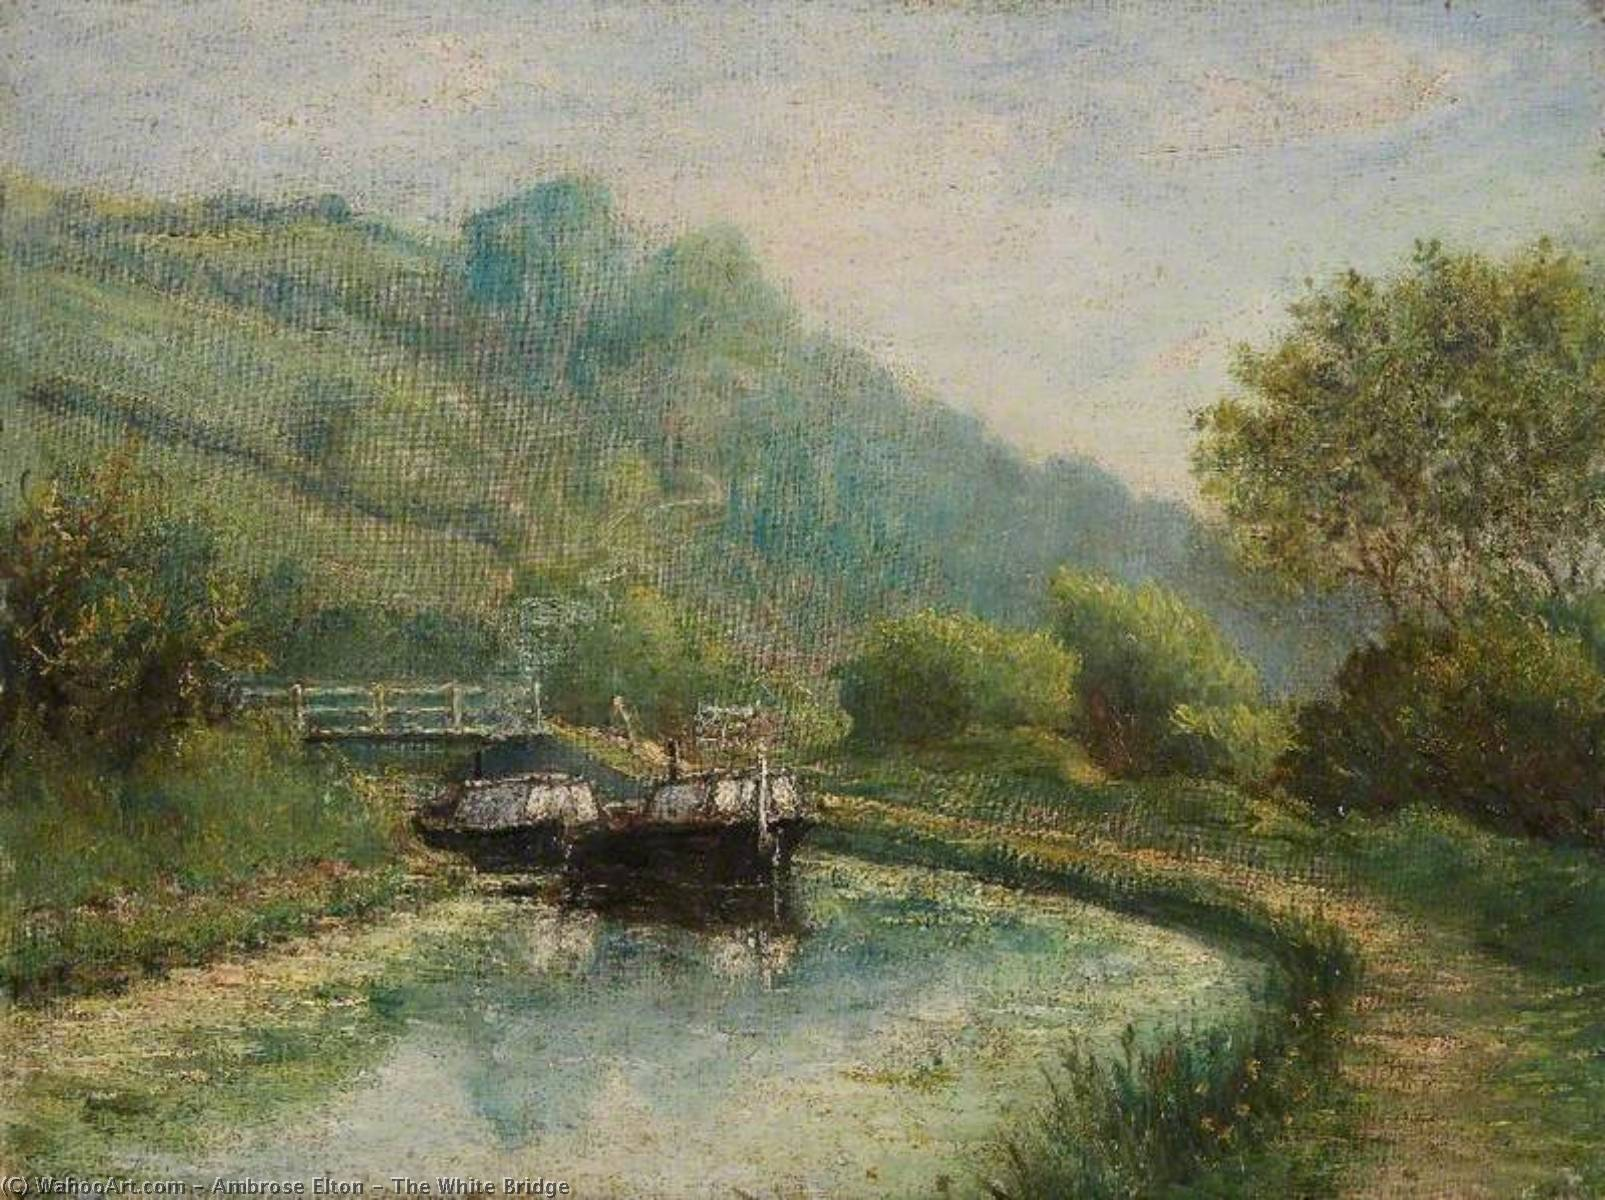 The White Bridge, 1915 by Ambrose Elton | Oil Painting | WahooArt.com